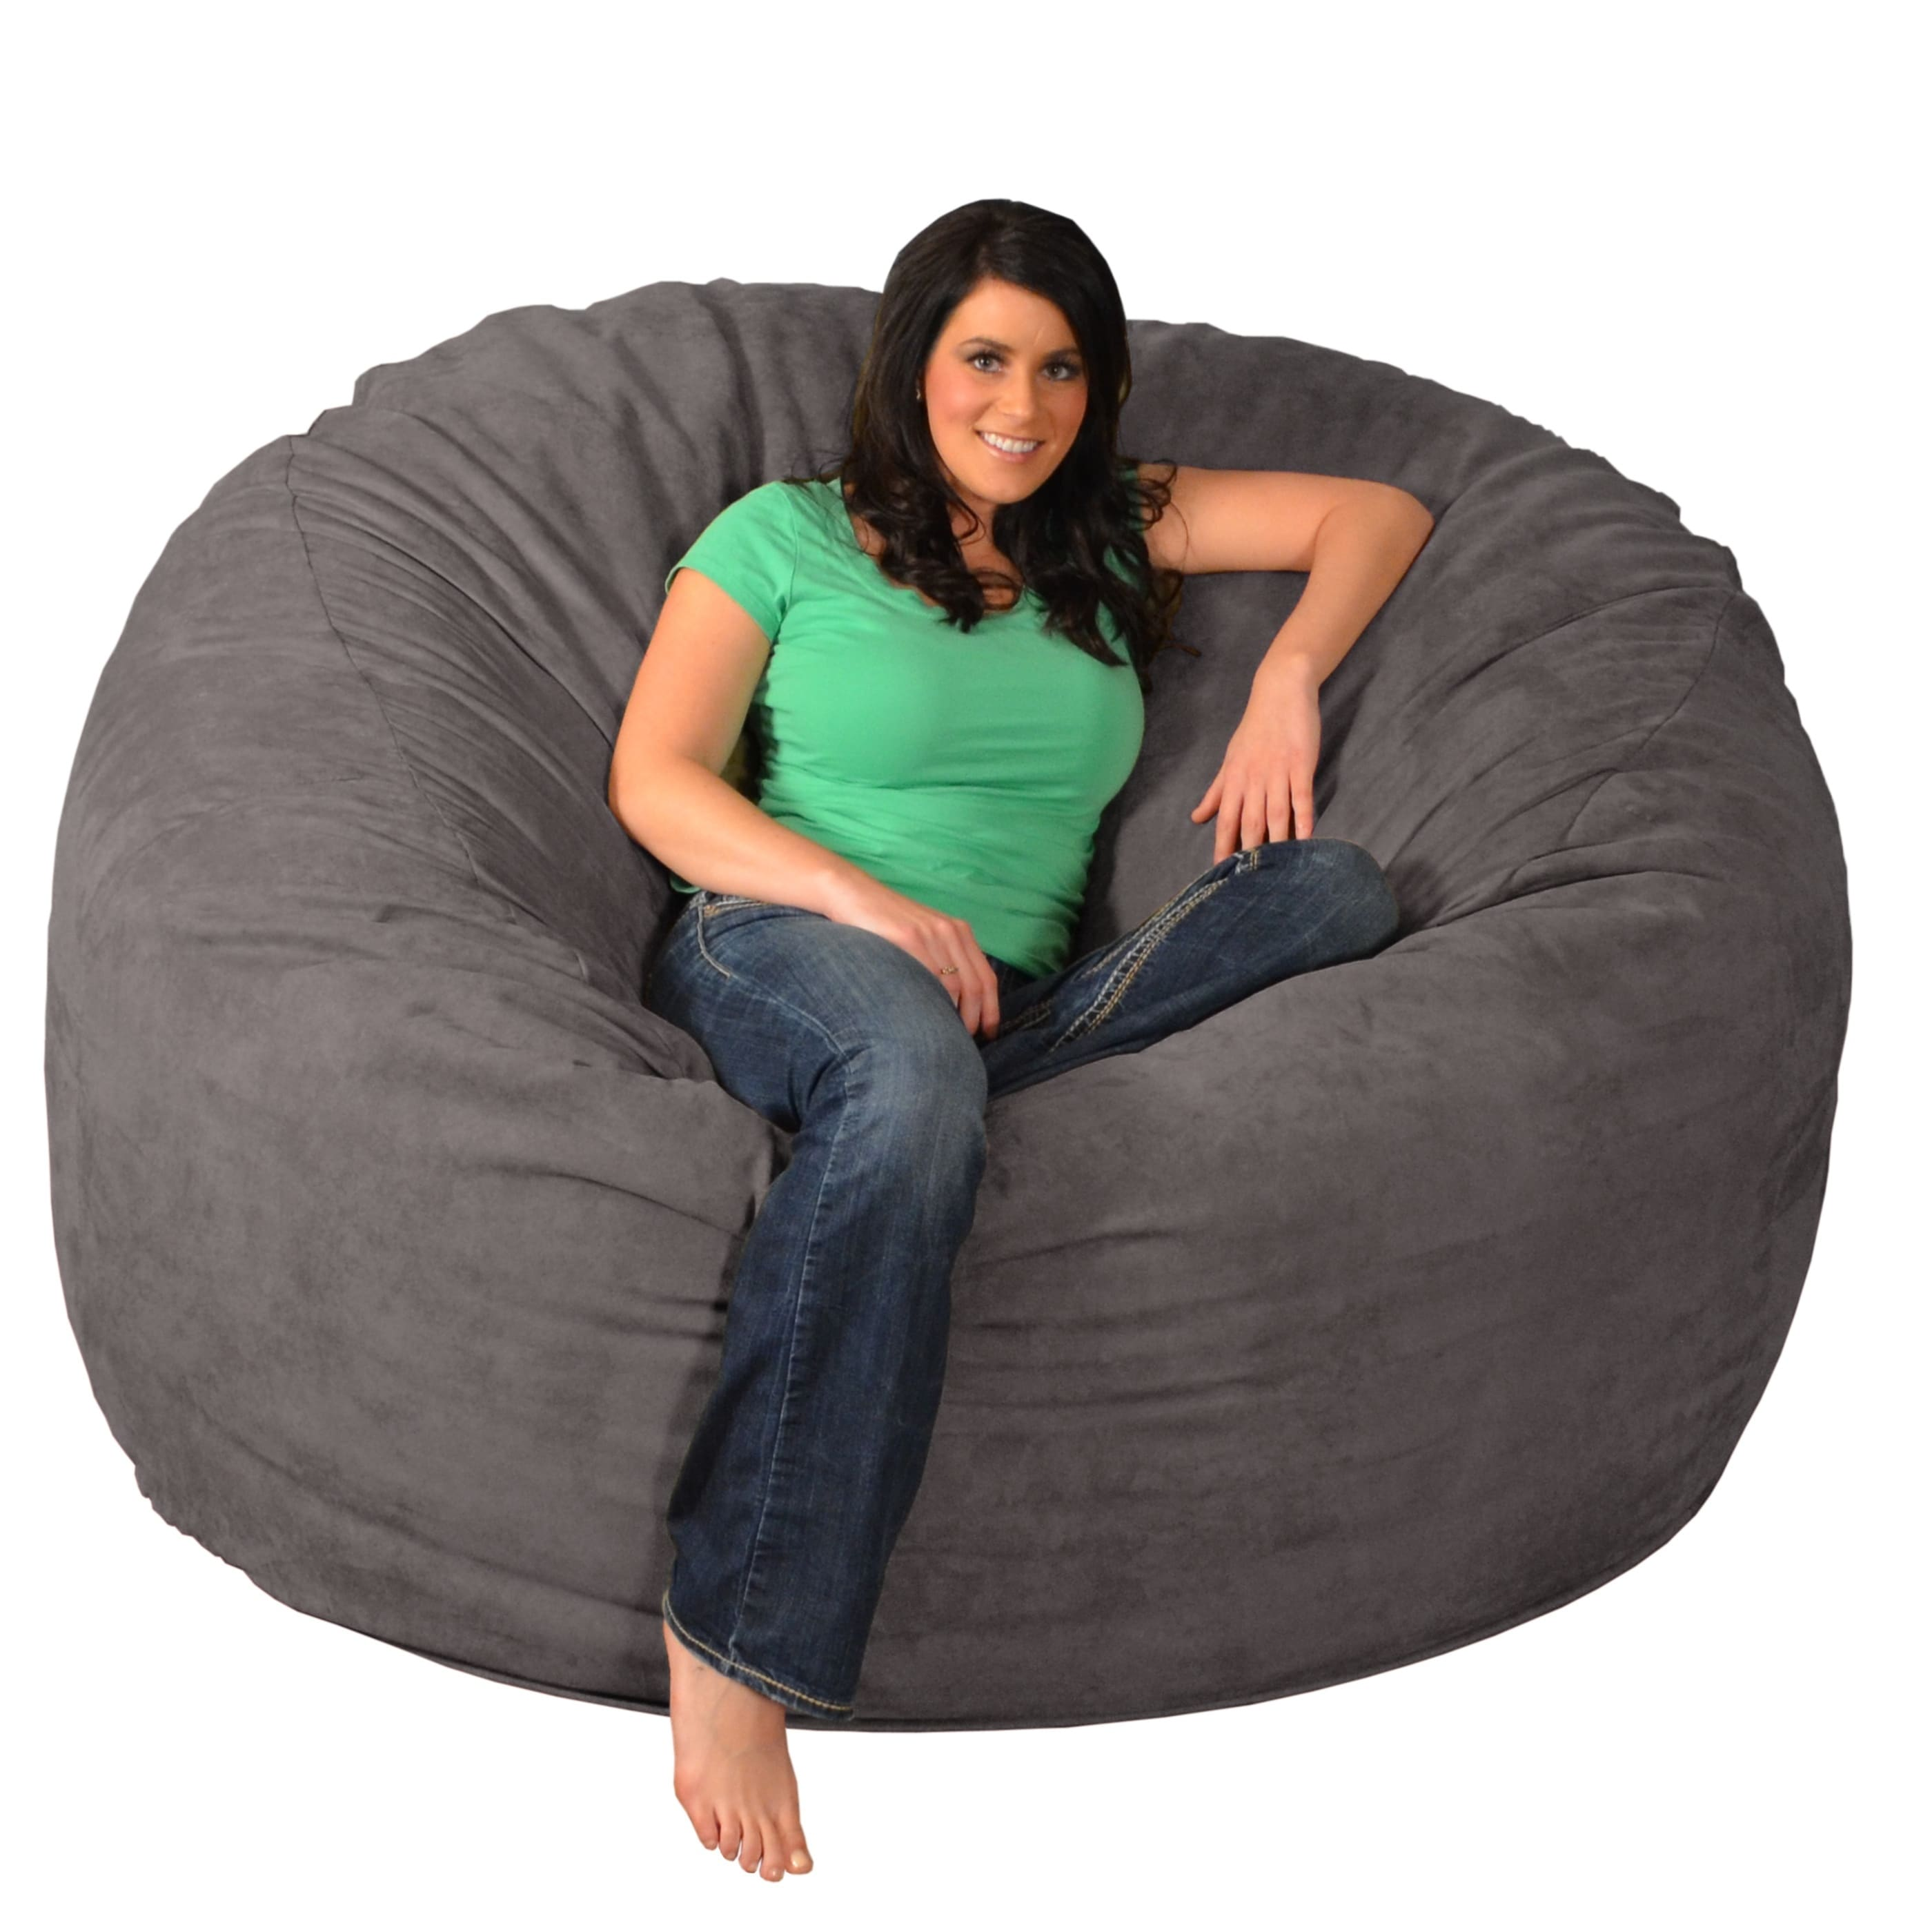 Foam Bean Bag Chair Giant Memory Foam Bean Bag 6 Foot Chair Ebay